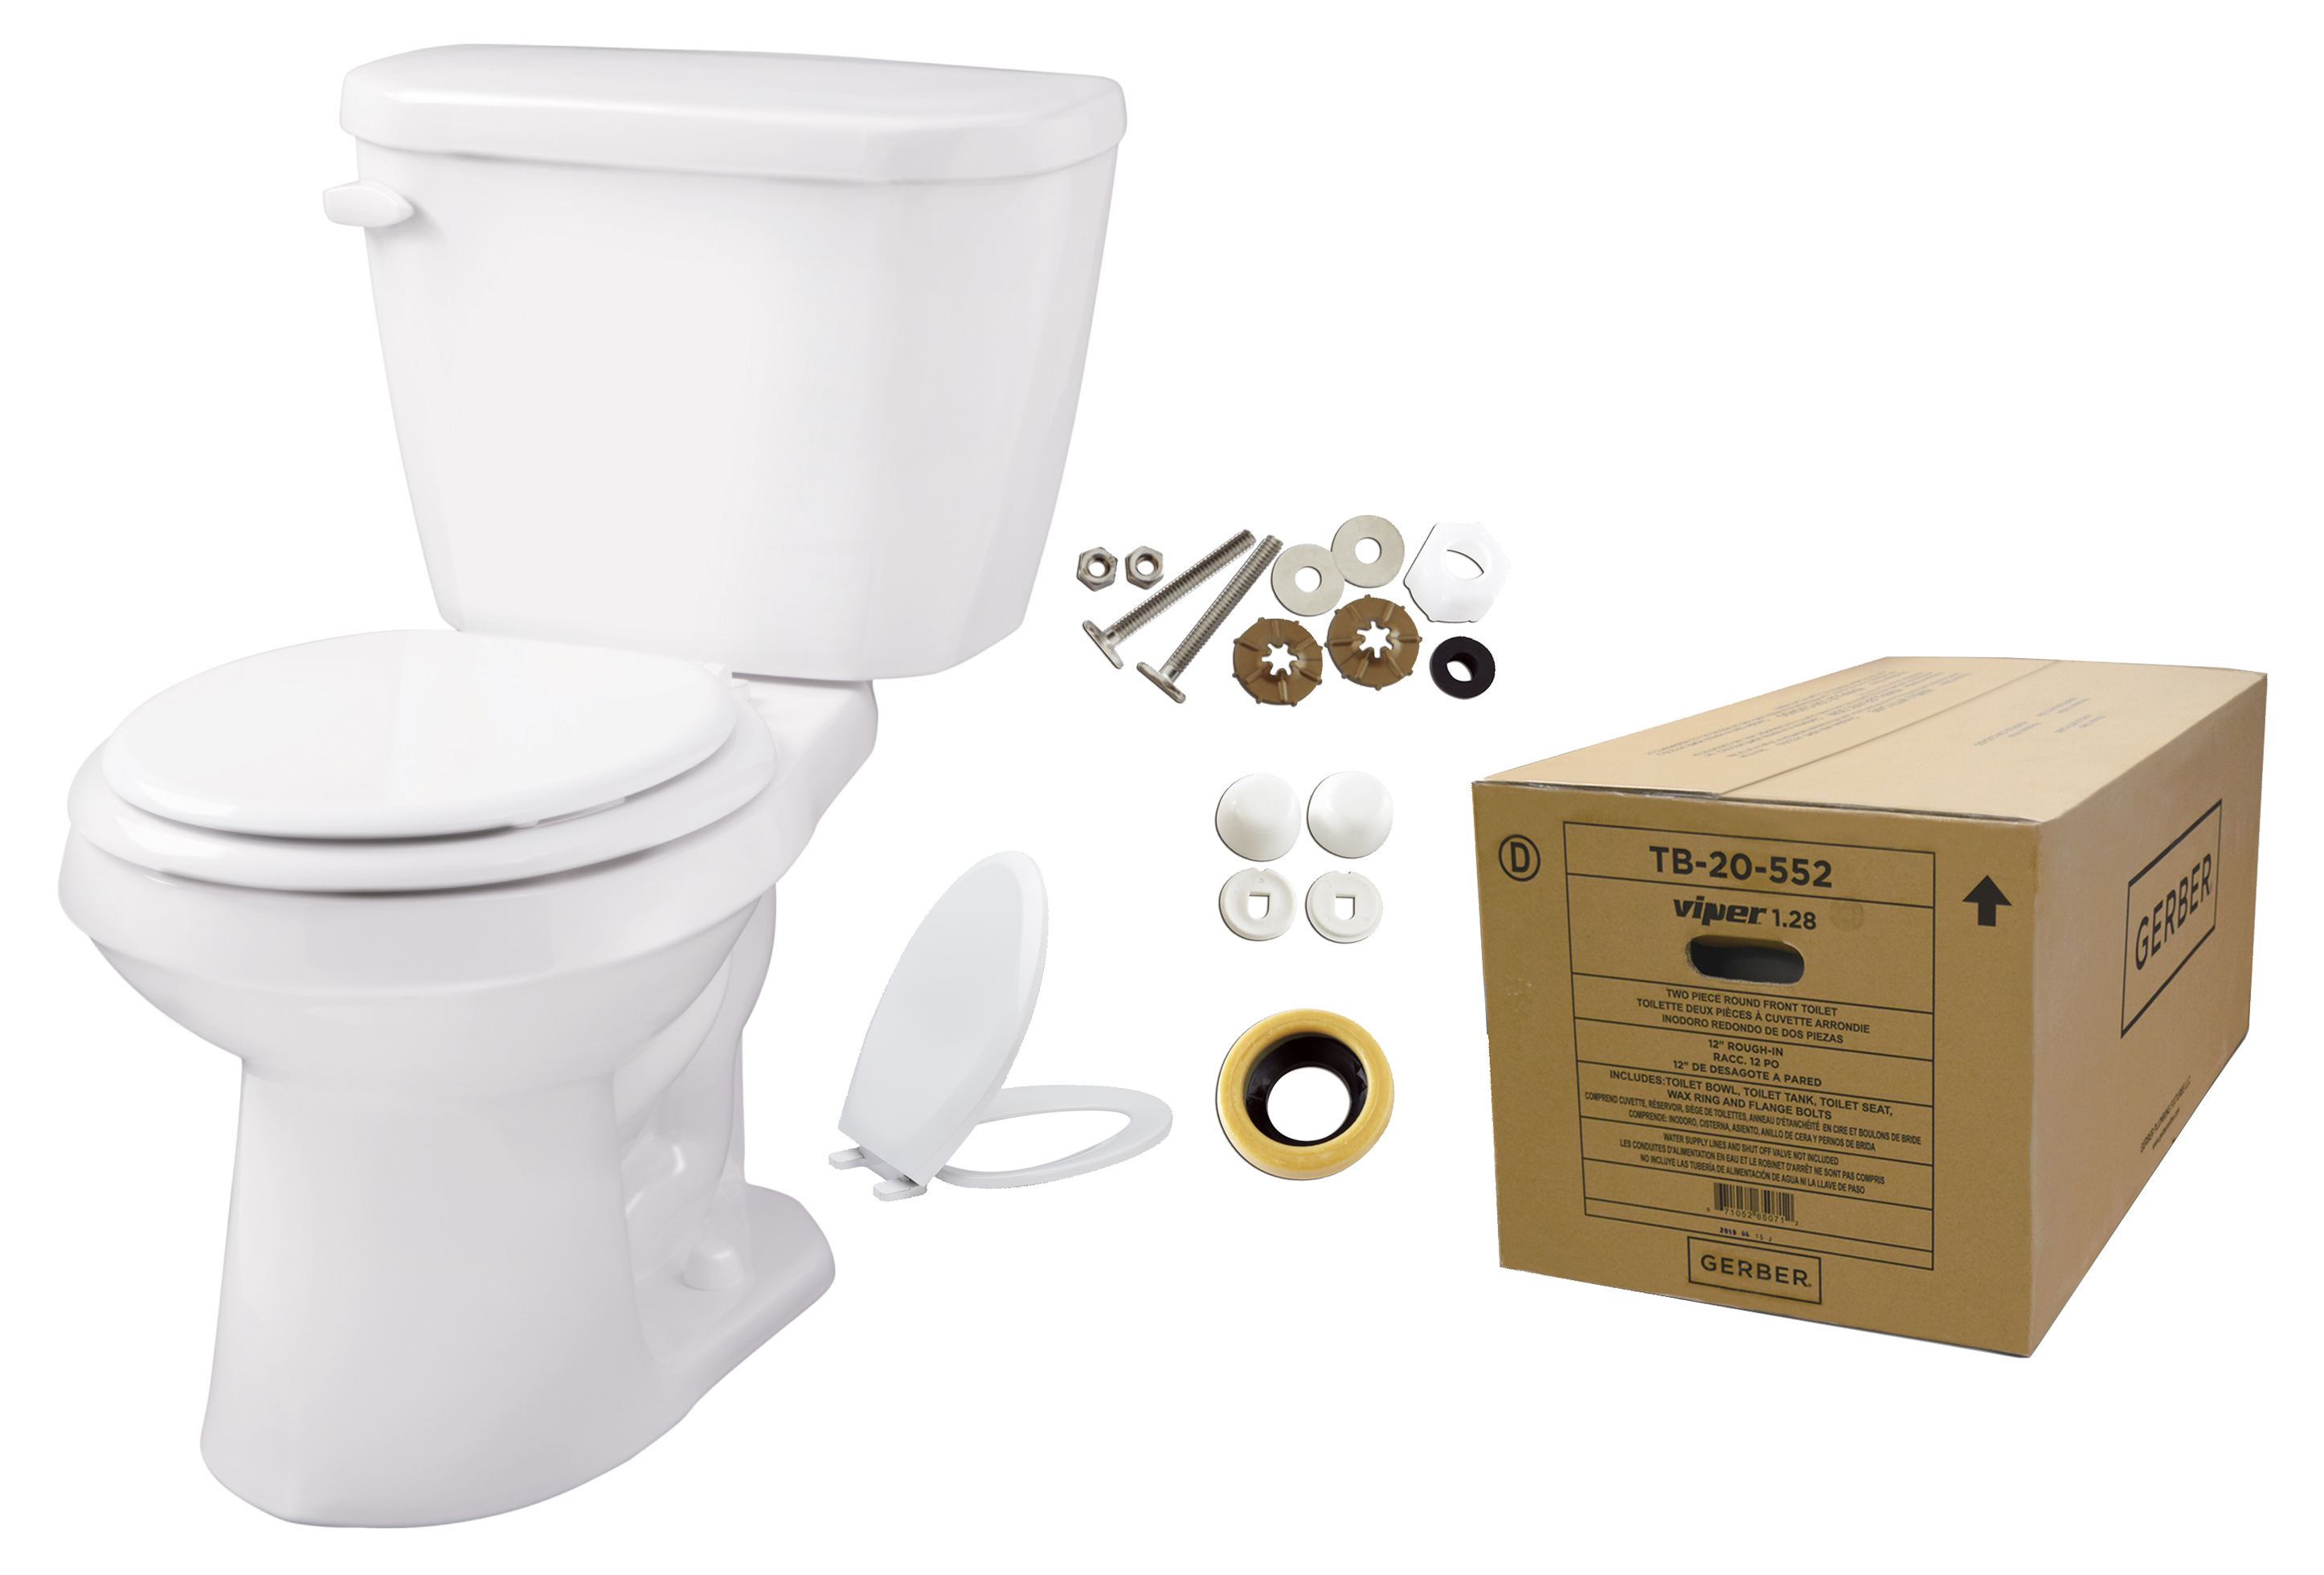 Viper 1 28 Gpf 12 Rough In Toilet In A Box Two Piece Round Front Toilet Gerber Plumbing